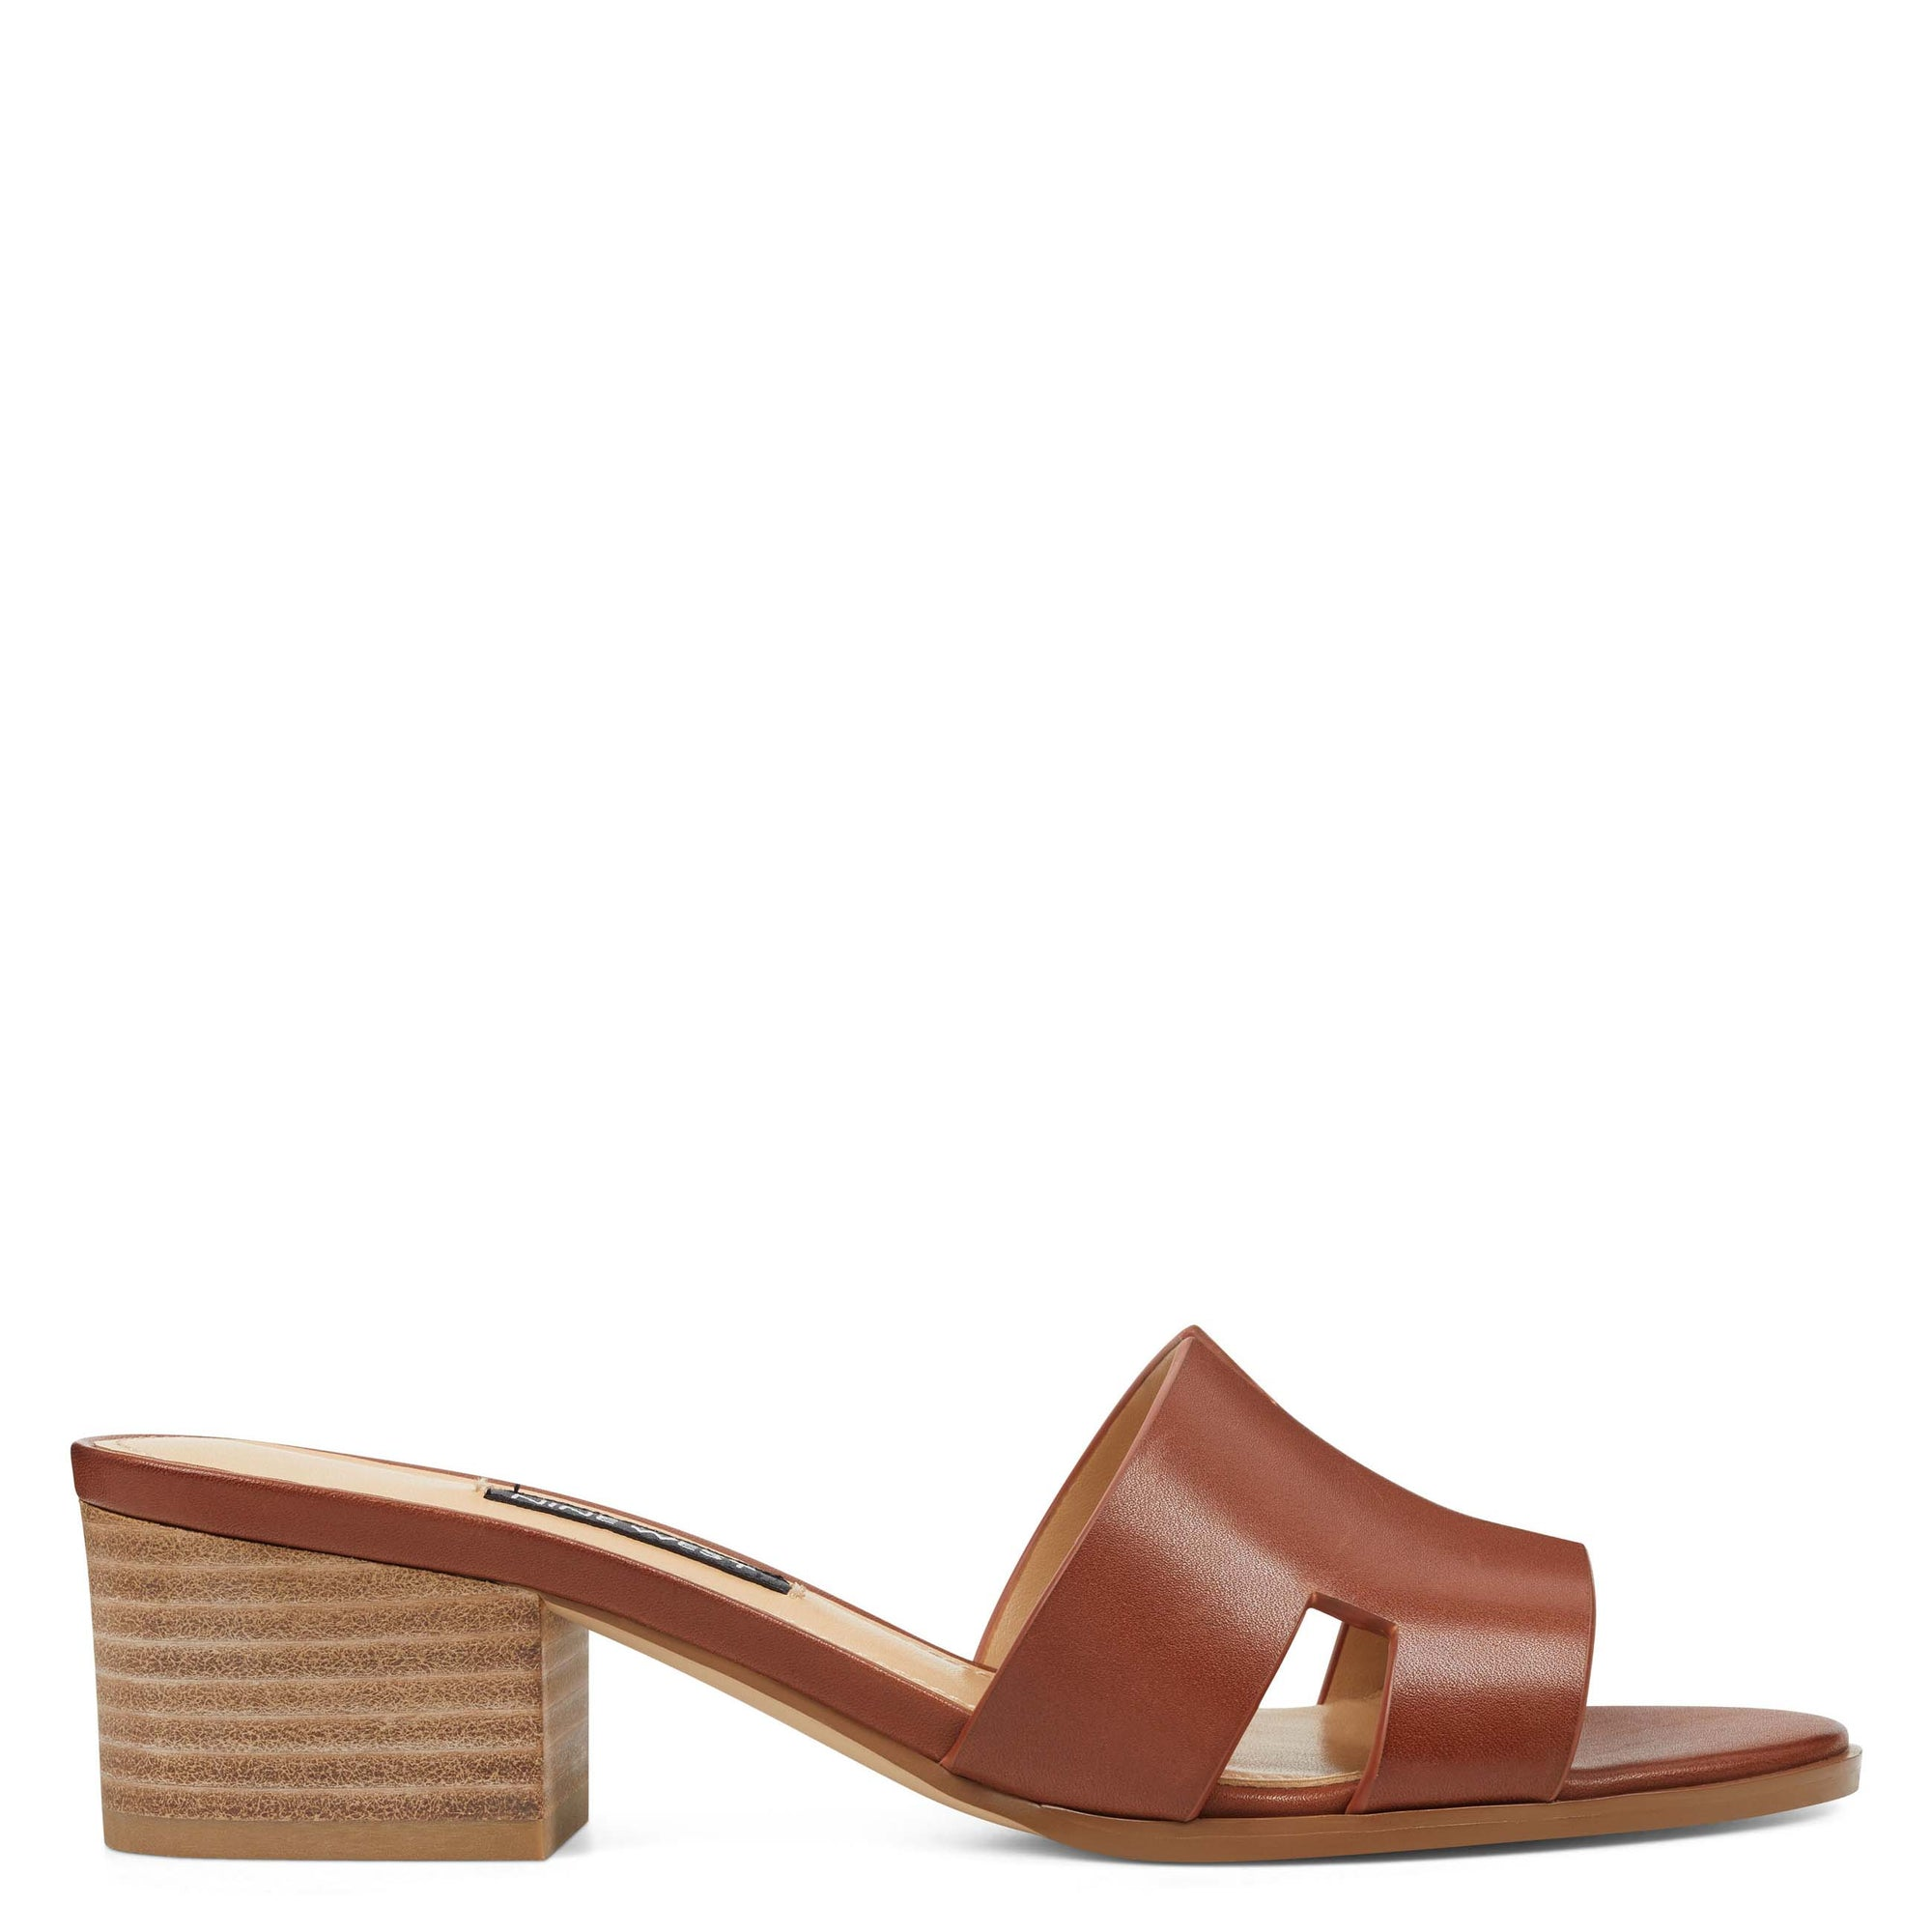 Aubrey Open Toe Slide Sandals